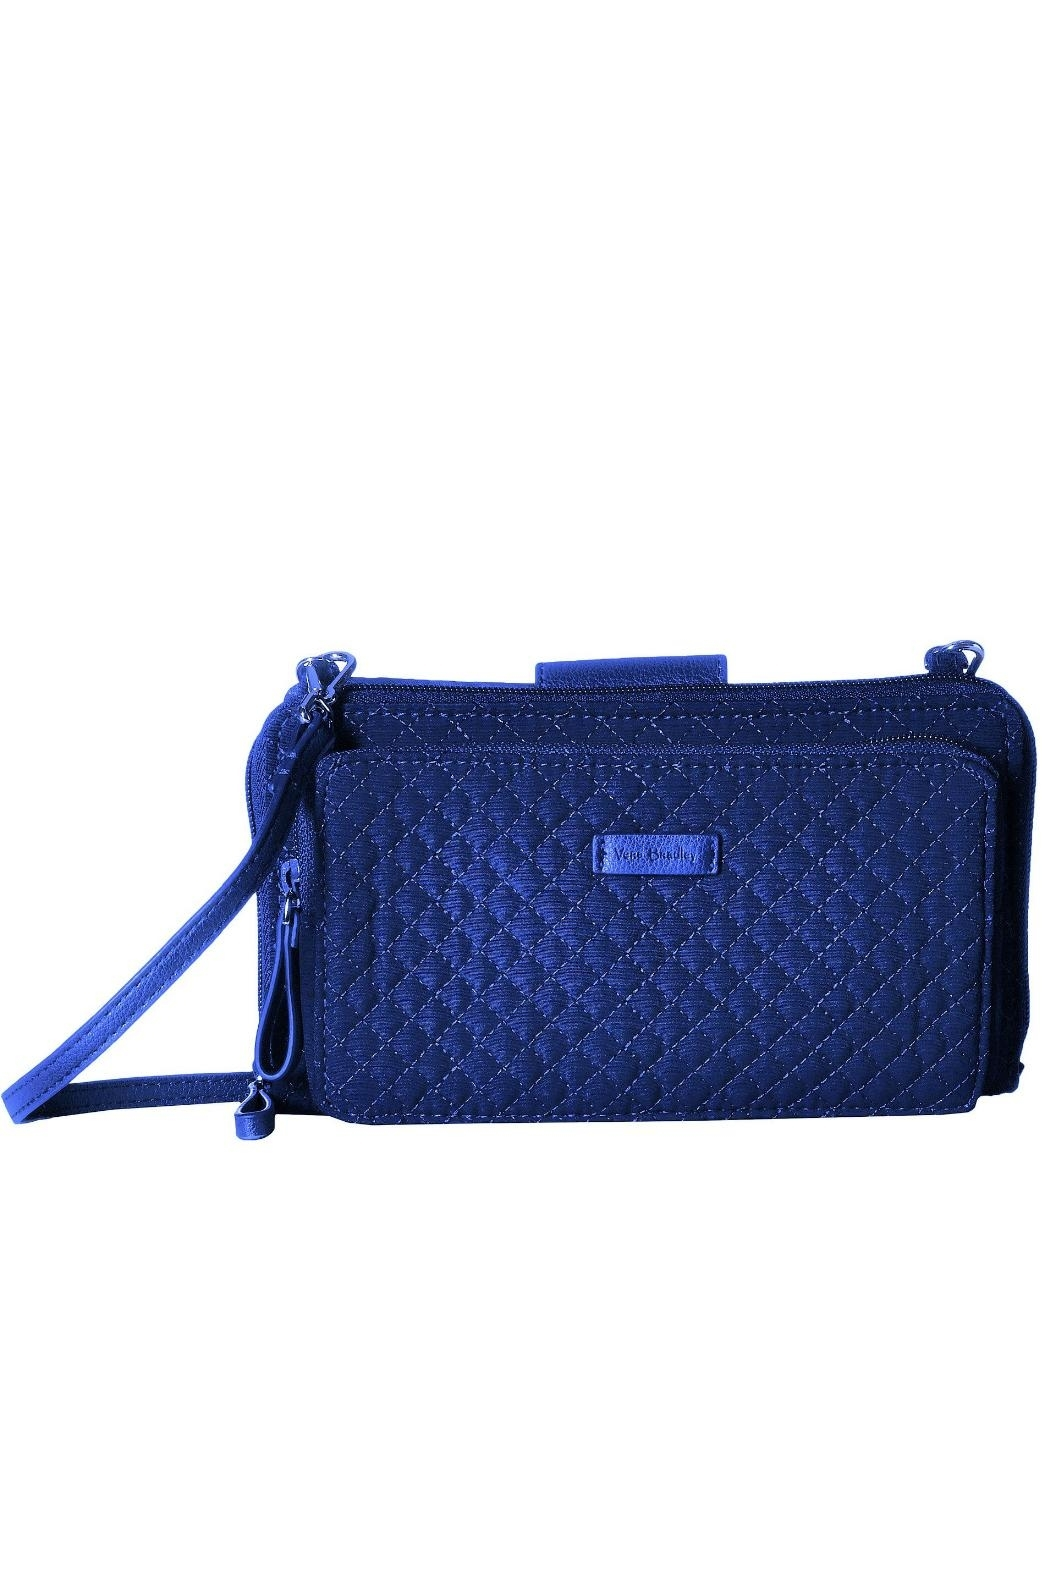 Vera Bradley Gage Blue Deluxe-Alltogether - Main Image